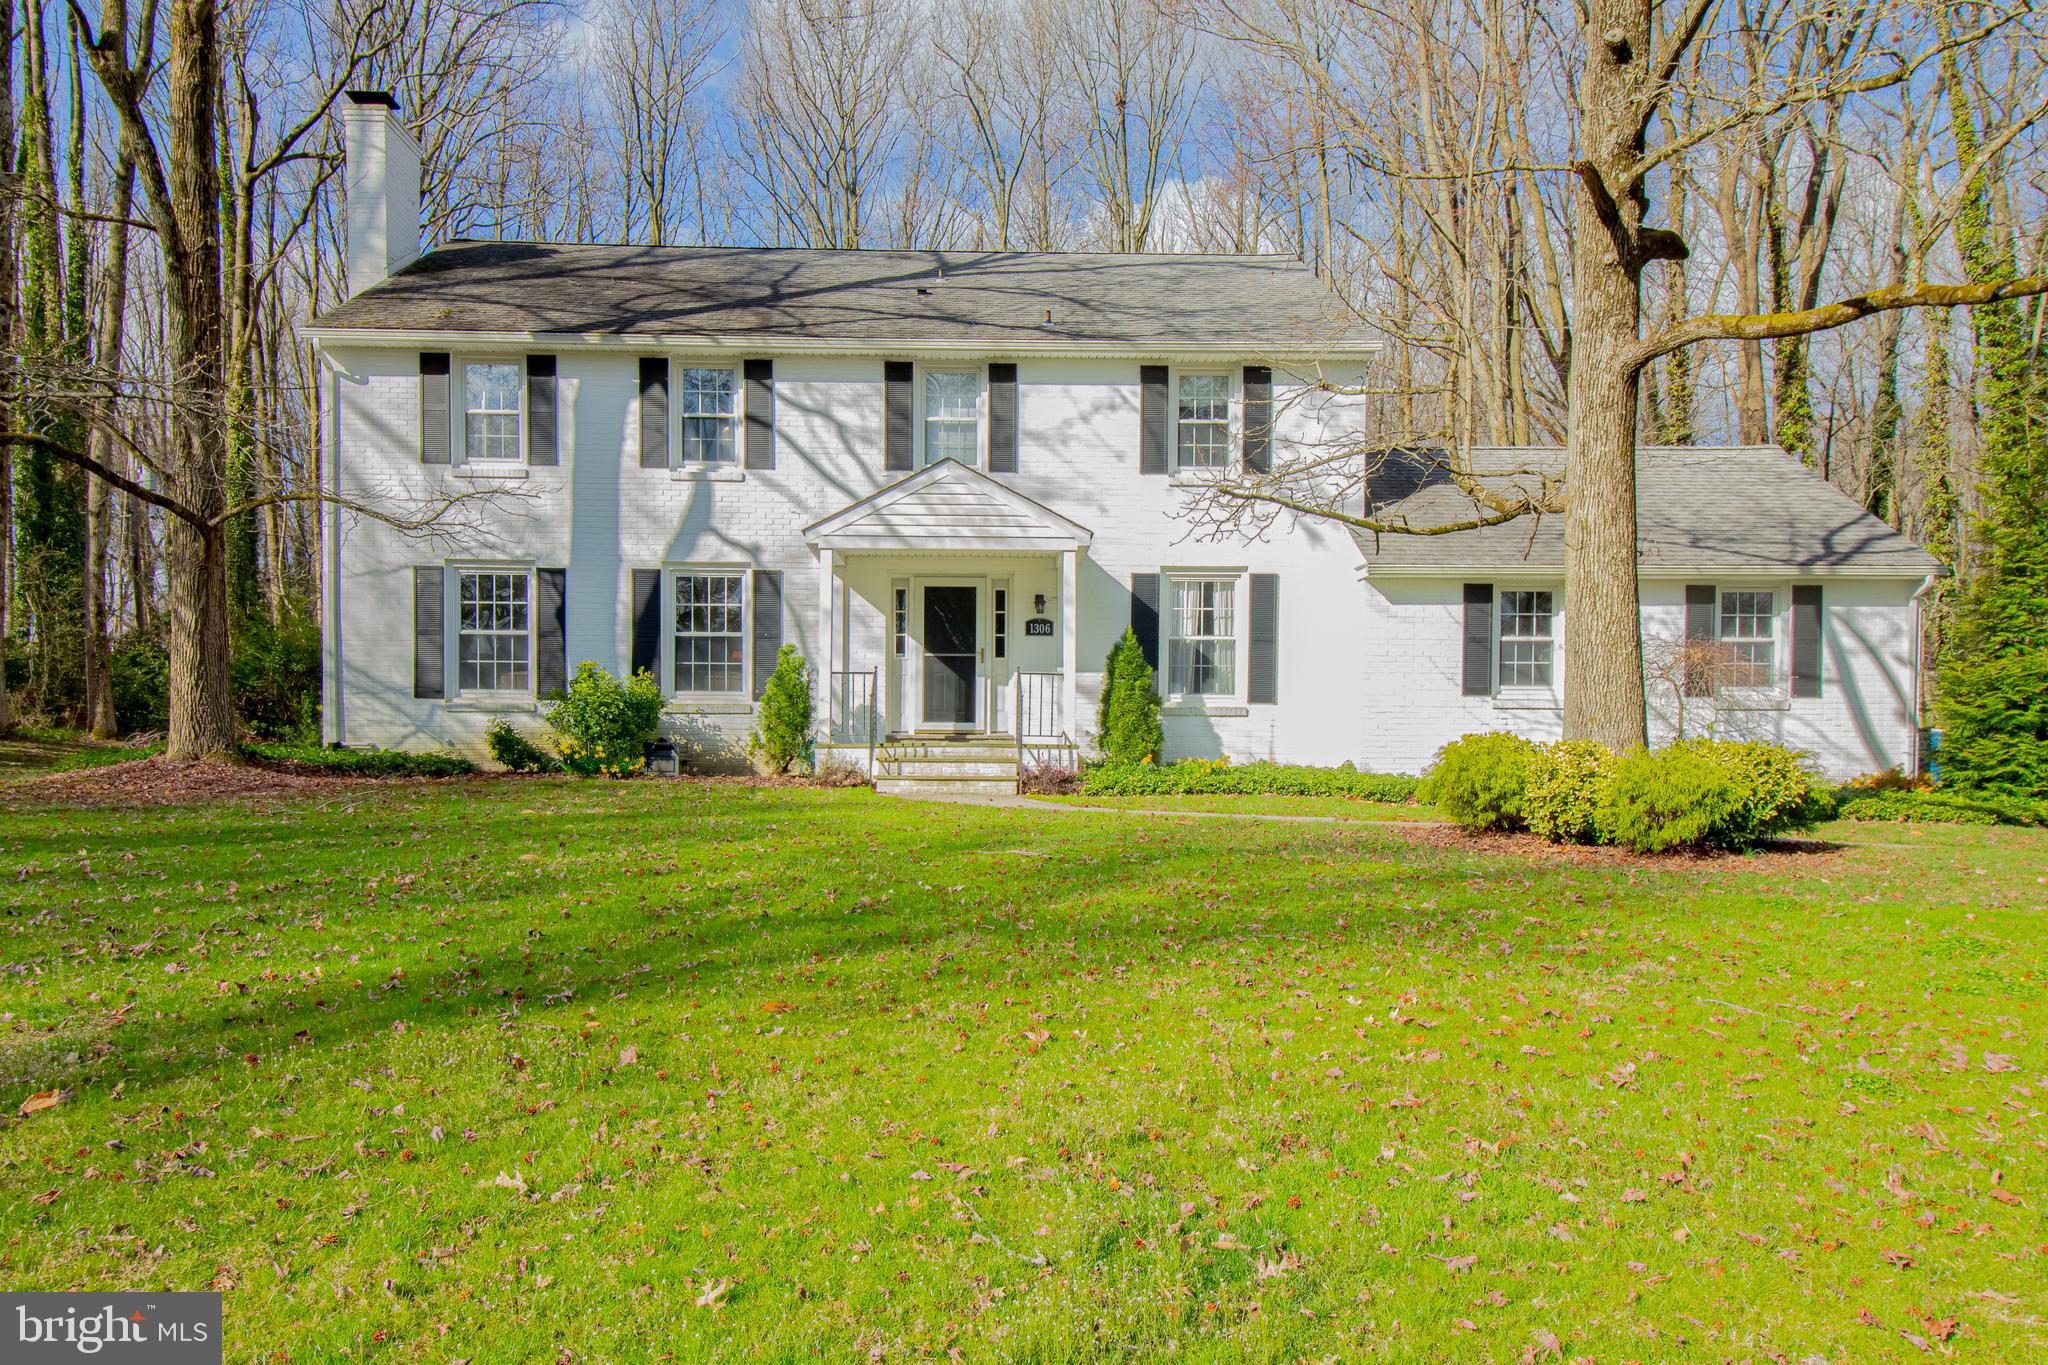 Quality describes this exceptionally maintained home in the sought after Welshire neighborhood. Location is everything, and this spacious 5 bedroom 2.5 bathroom Brandywine Hundred home is located conveniently near multiple state parks, walking trails, Route 202, I-95 and everything else that North Wilmington has to offer. You will immediately be greeted by the elegant curb appeal of the stately brick exterior, well manicured landscaping and extended front yard. Start your tour inside through the bright and open foyer and into the formal living room that offers an abundance of natural light and brick fireplace centerpiece. Continue into the spacious eat-in kitchen to find your quality solid wood cabinets, granite countertops, recessed lighting and stainless steel appliances. Right off of the kitchen is your first-floor office or fifth bedroom option, and access to the screened in porch and two-car garage. You will also find beautiful hardwood flooring throughout, your formal dining room, convenient powder room and second spacious living room. On the second floor you will find three spacious guest bedrooms with plenty of closet space and a recently updated full bathroom. Last but not least is the master bedroom with attached ensuite and an abundance of closet space. On the lower level is the beautifully finished basement with egress window giving you a ton of options. Outside is a spacious backyard, perfect for relaxing or entertaining. If you are looking for a spacious home with an abundance of storage and the ability to entertain for any occasion, this is the home for you. This home truly has it all, the only thing left for you to do is move in!